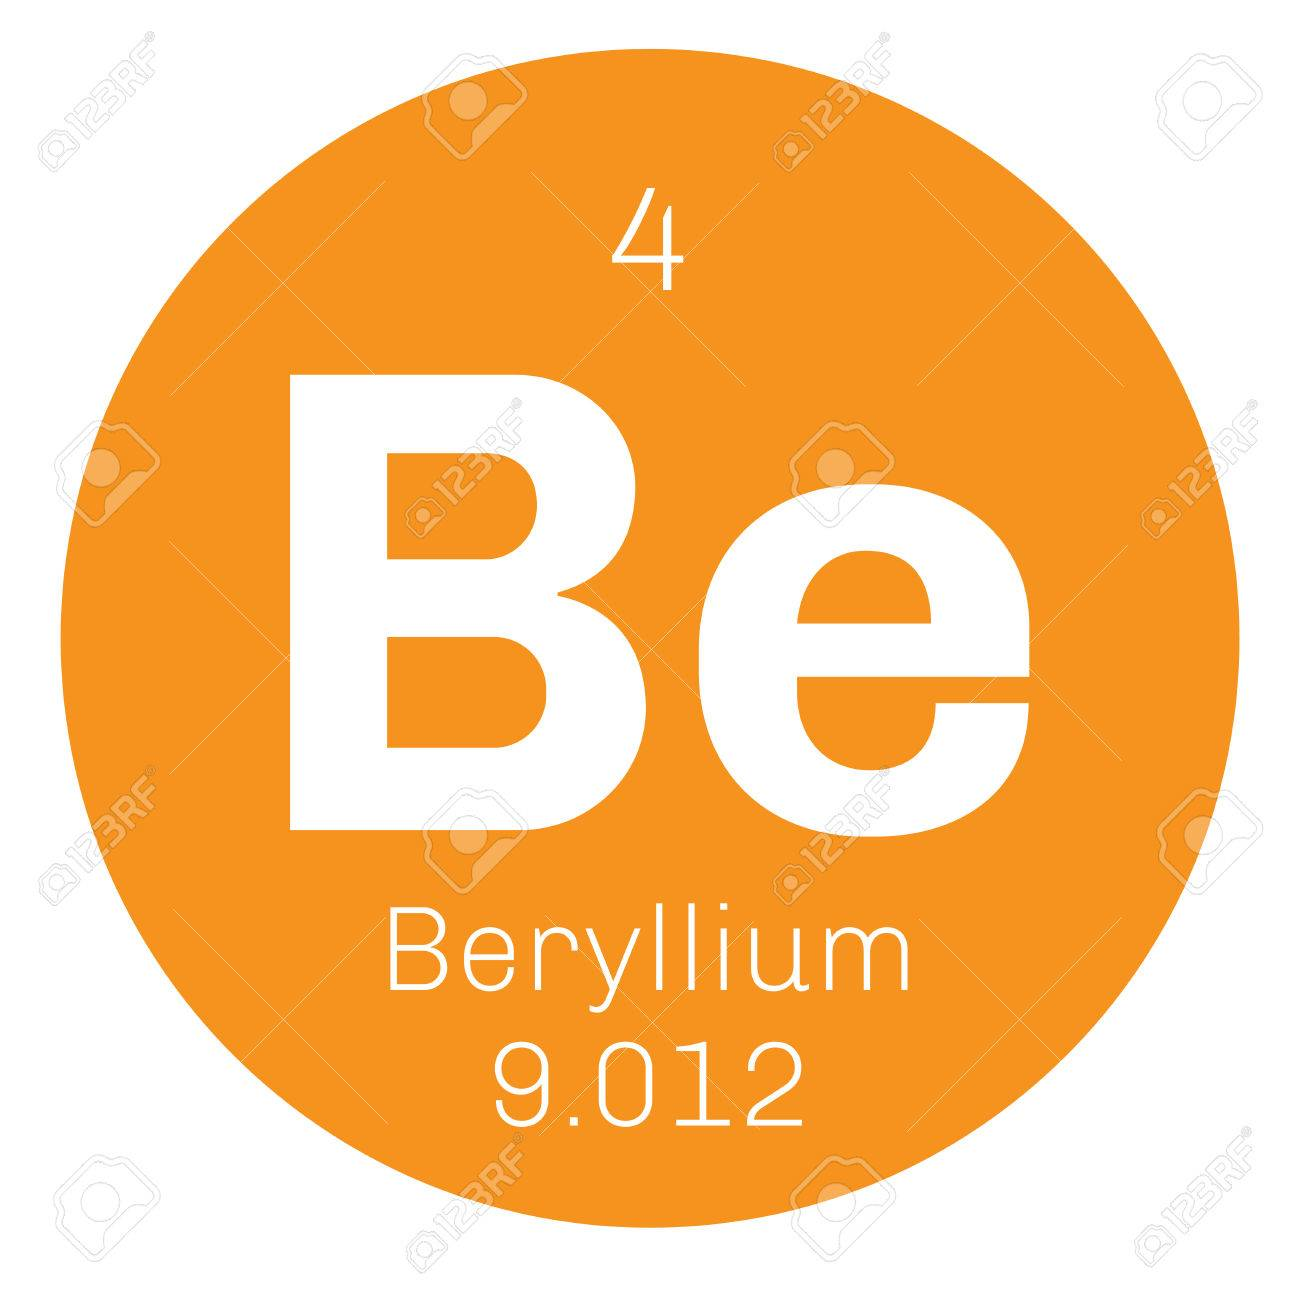 Beryllium chemical element a rare element colored icon with beryllium chemical element a rare element colored icon with atomic number and atomic weight buycottarizona Image collections